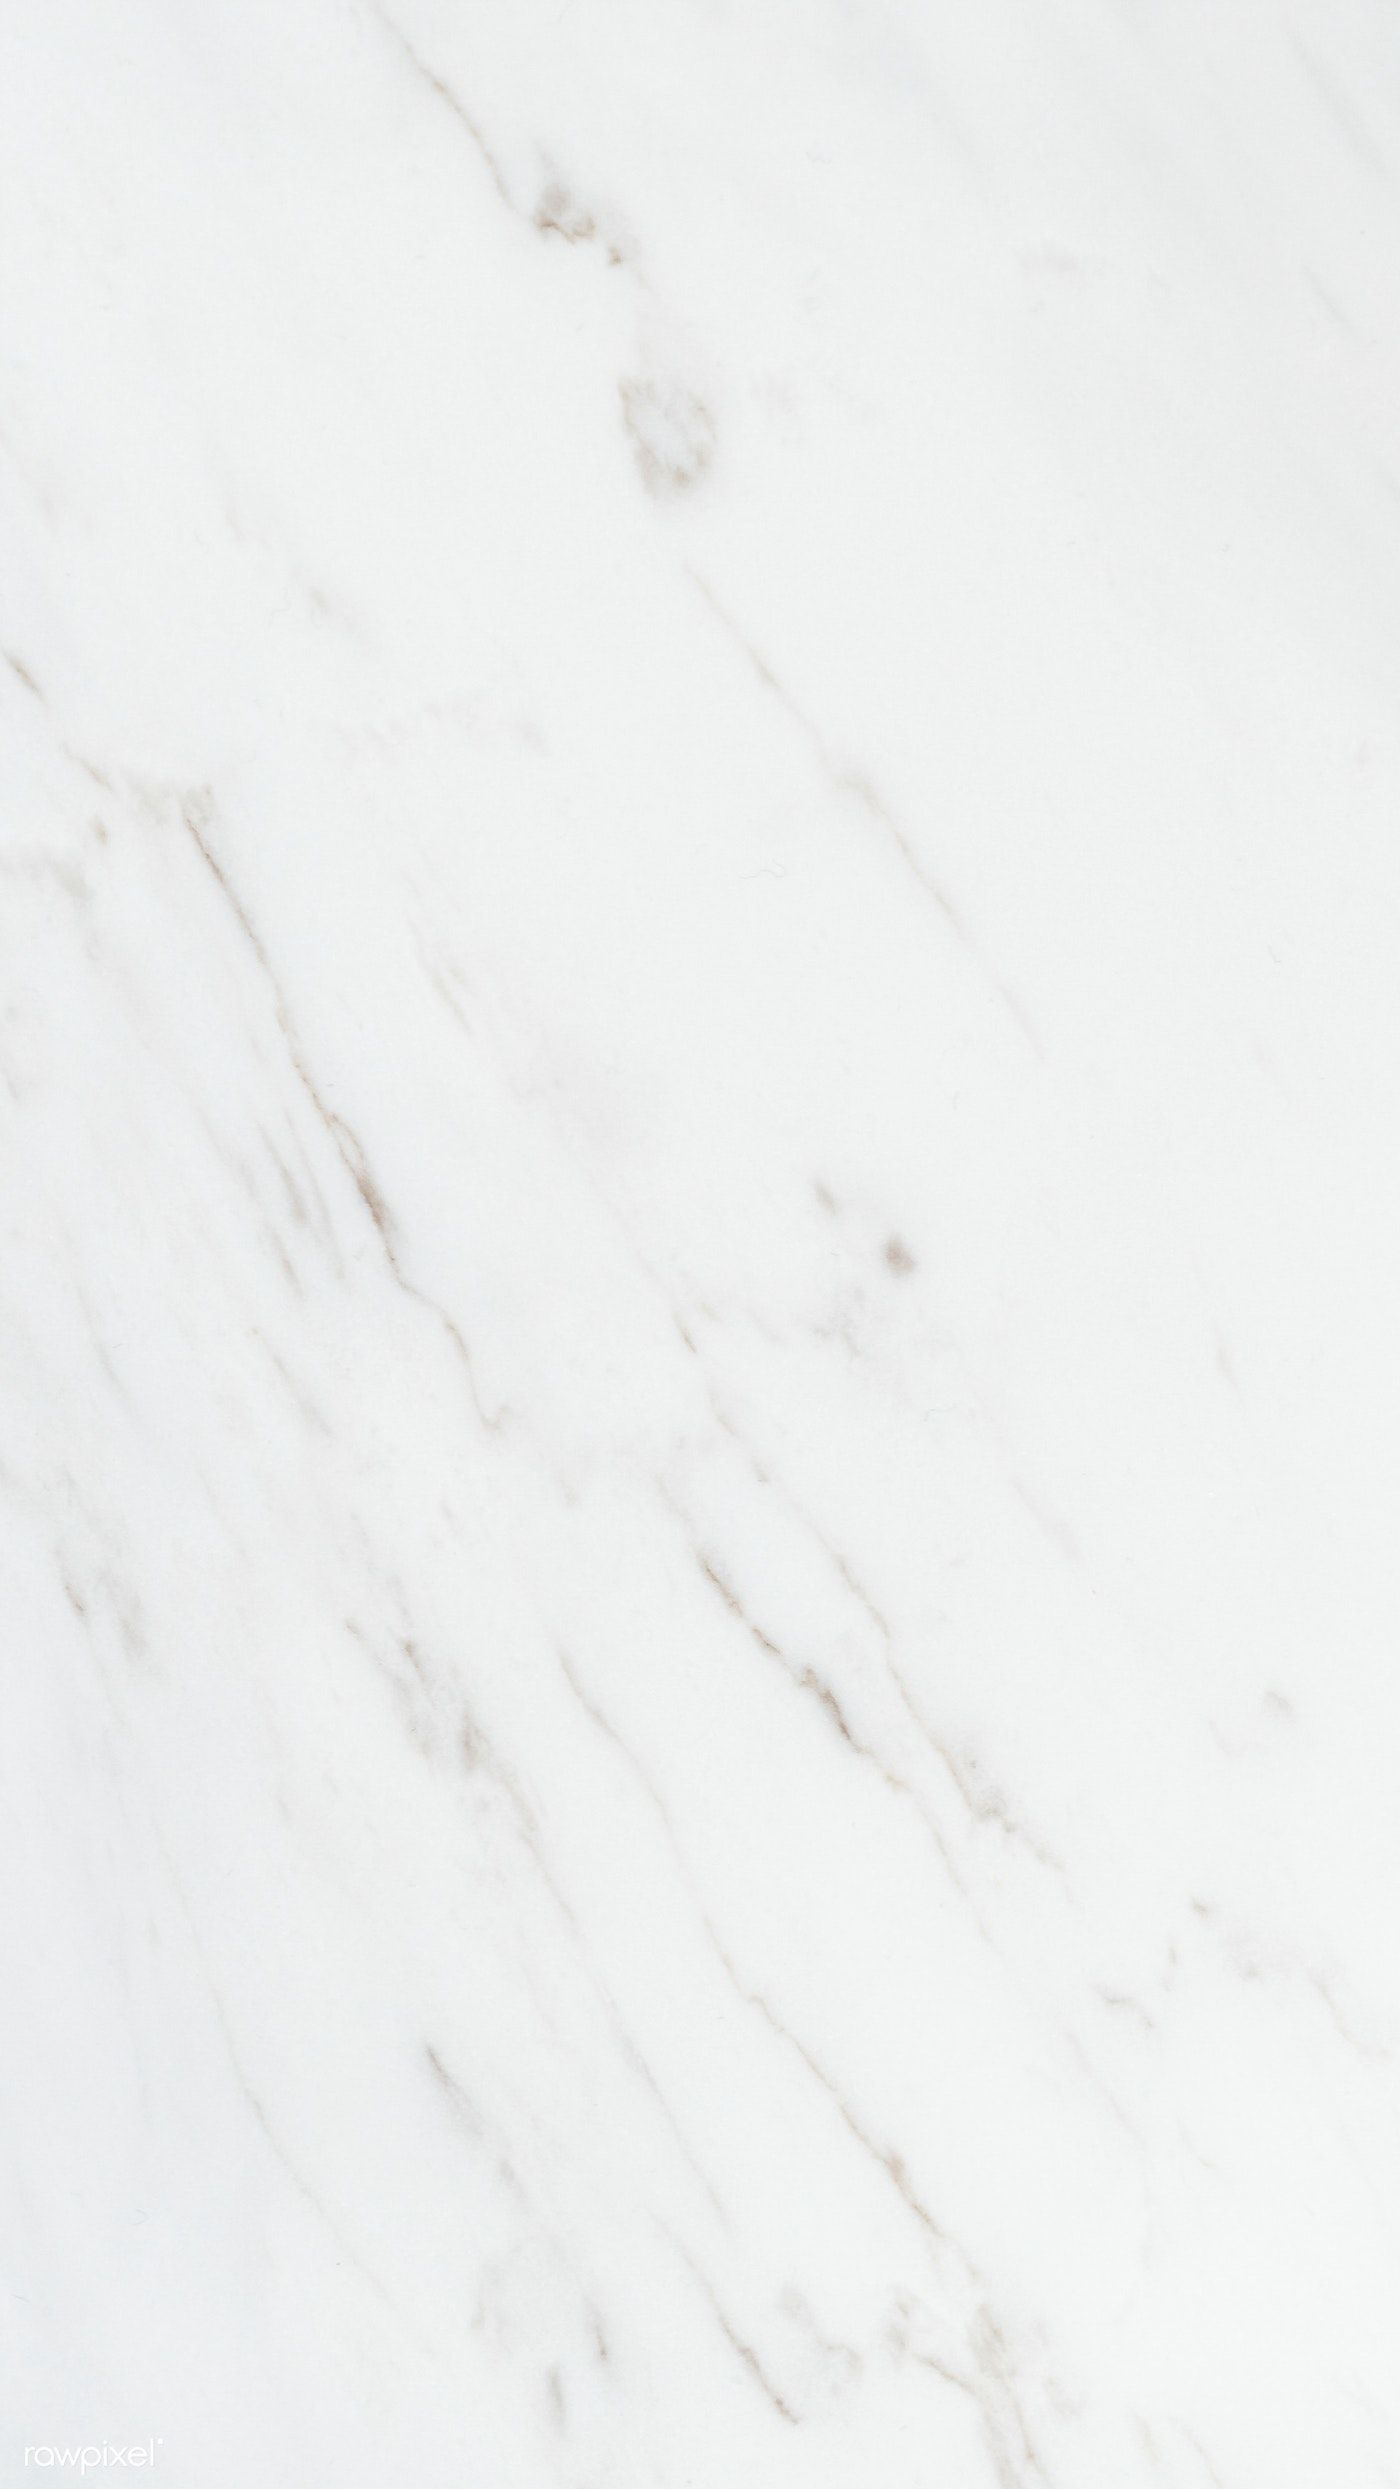 Download premium image of Smooth plain white marble texture mobile